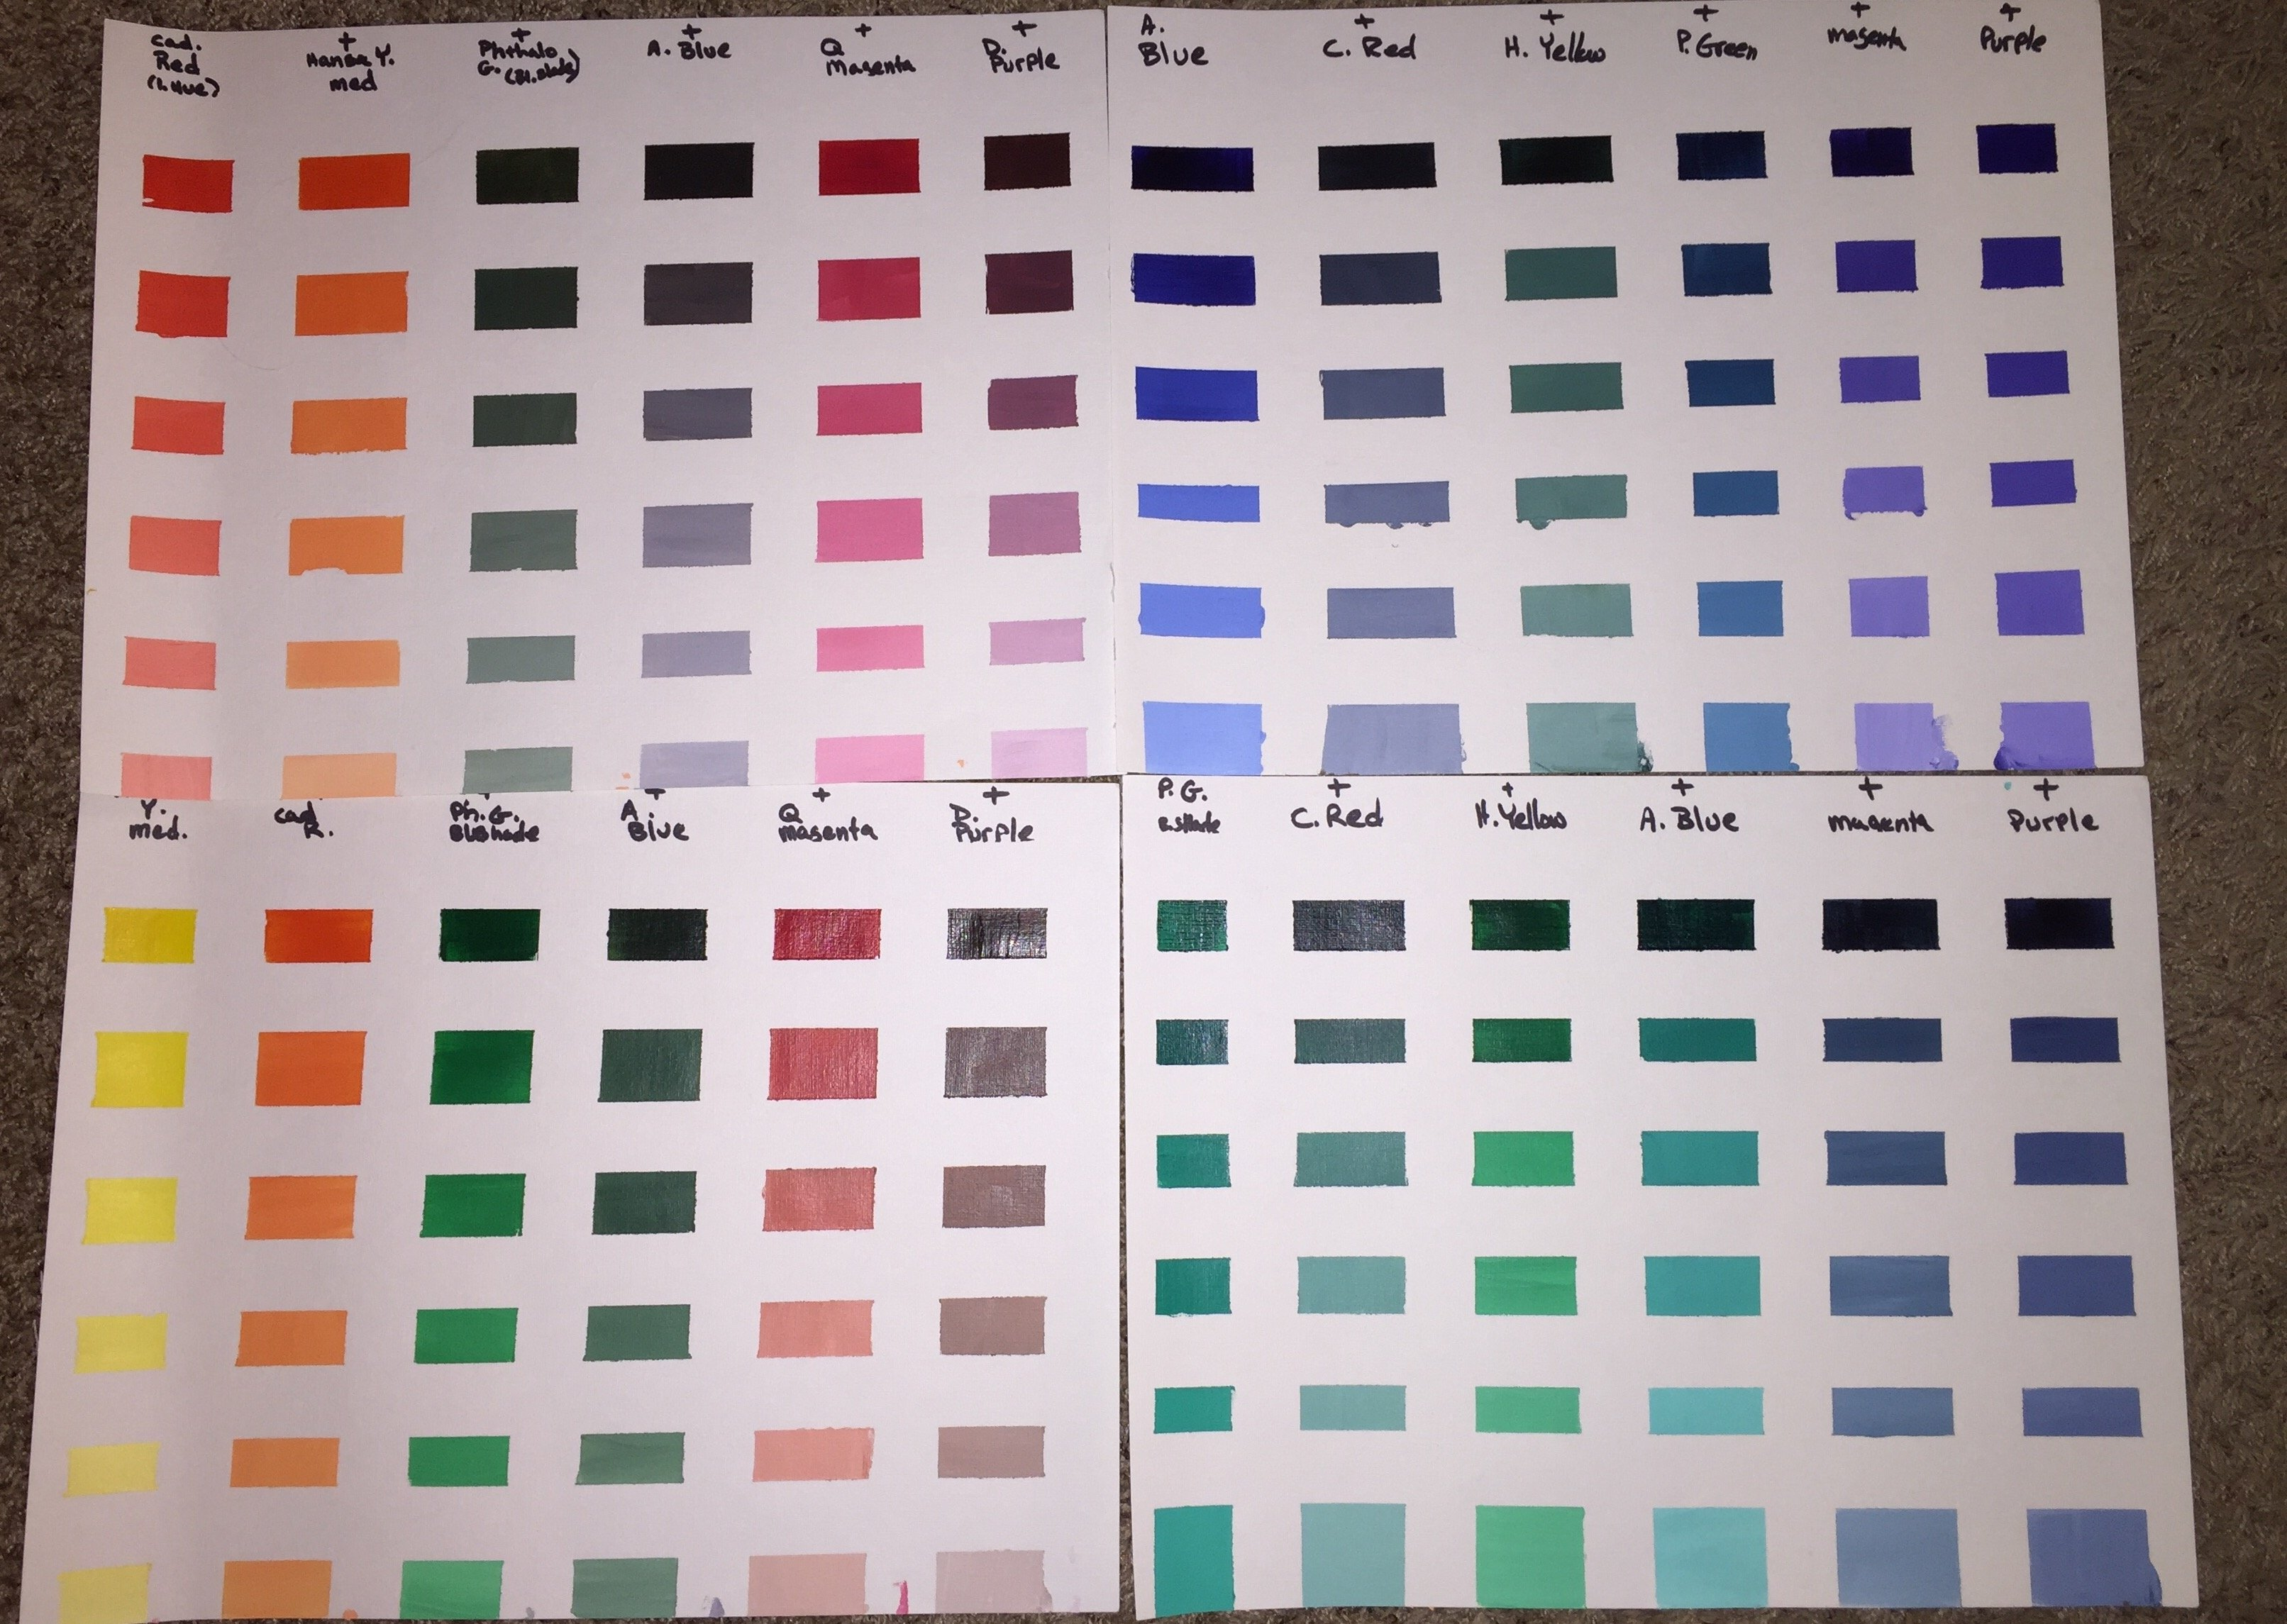 My first color chart draw mix paint forum imageeg 12m nvjuhfo Choice Image